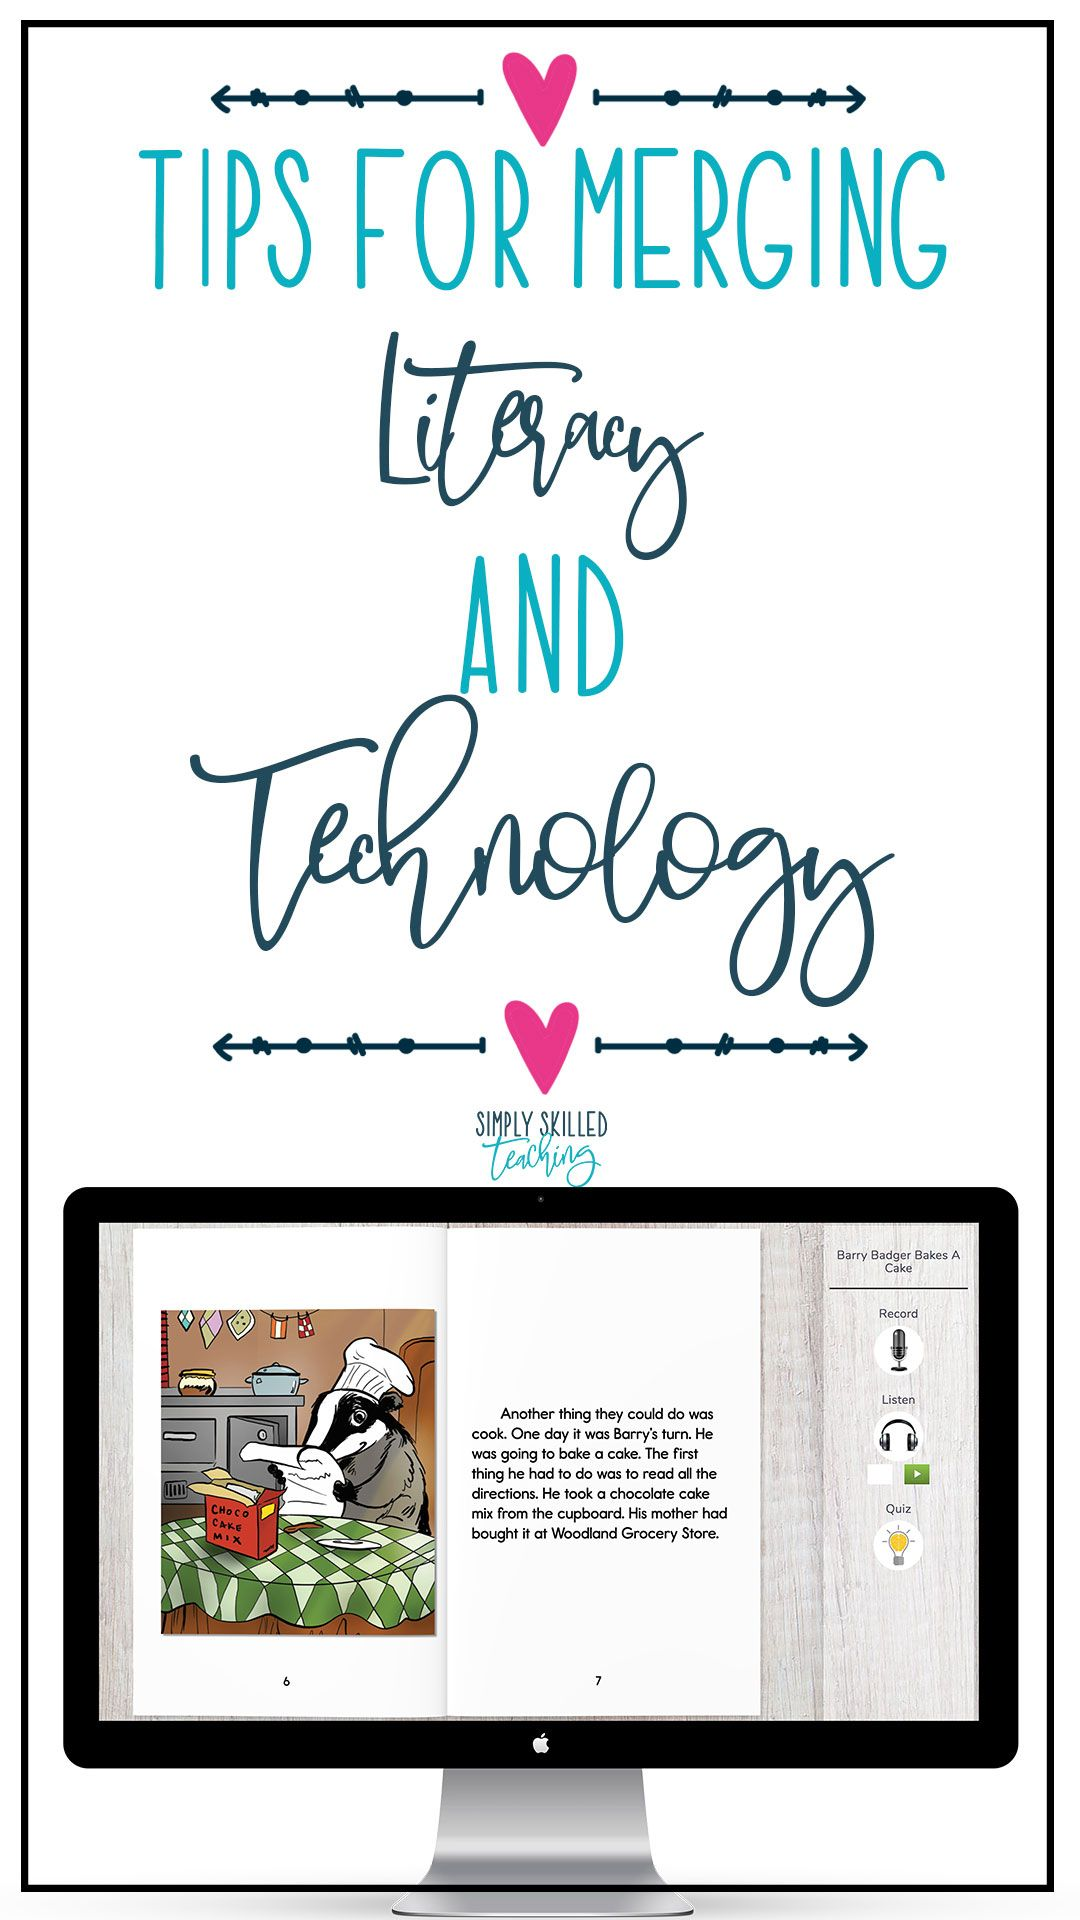 Tips For Merging Literacy And Technology